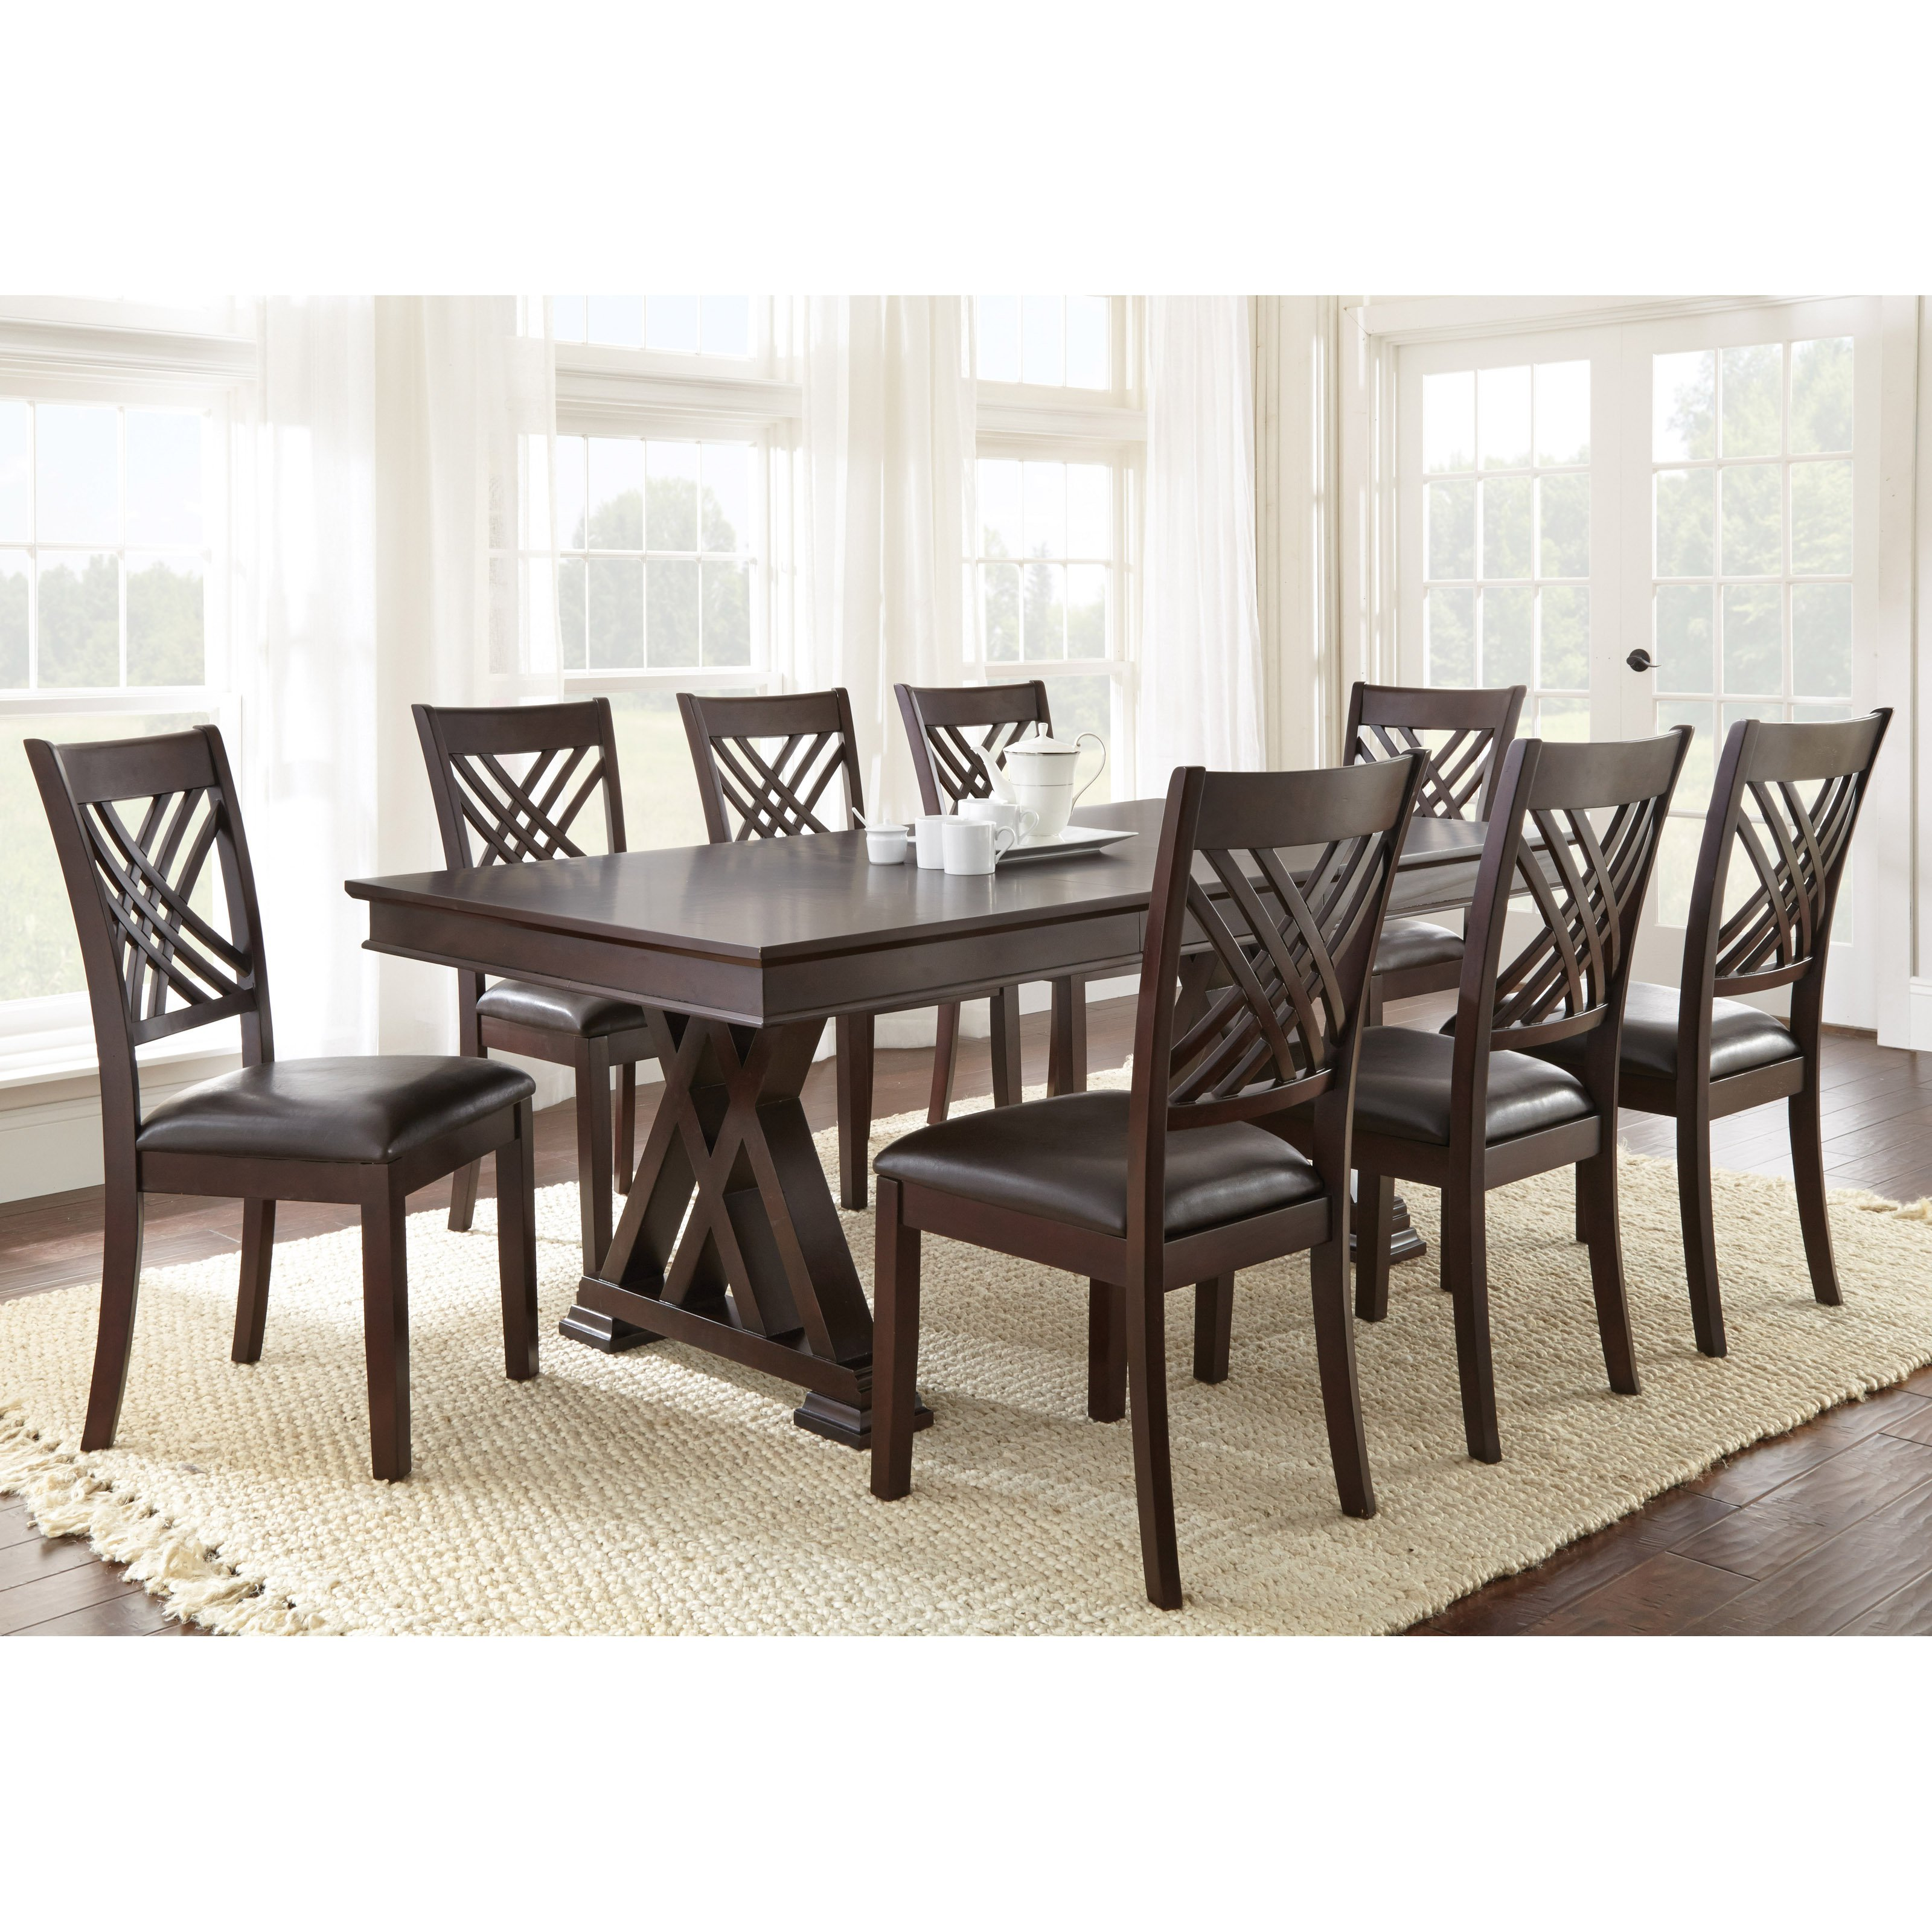 Steve Silver 9 Piece Adrian Dining Table Set by Steve Silver Co